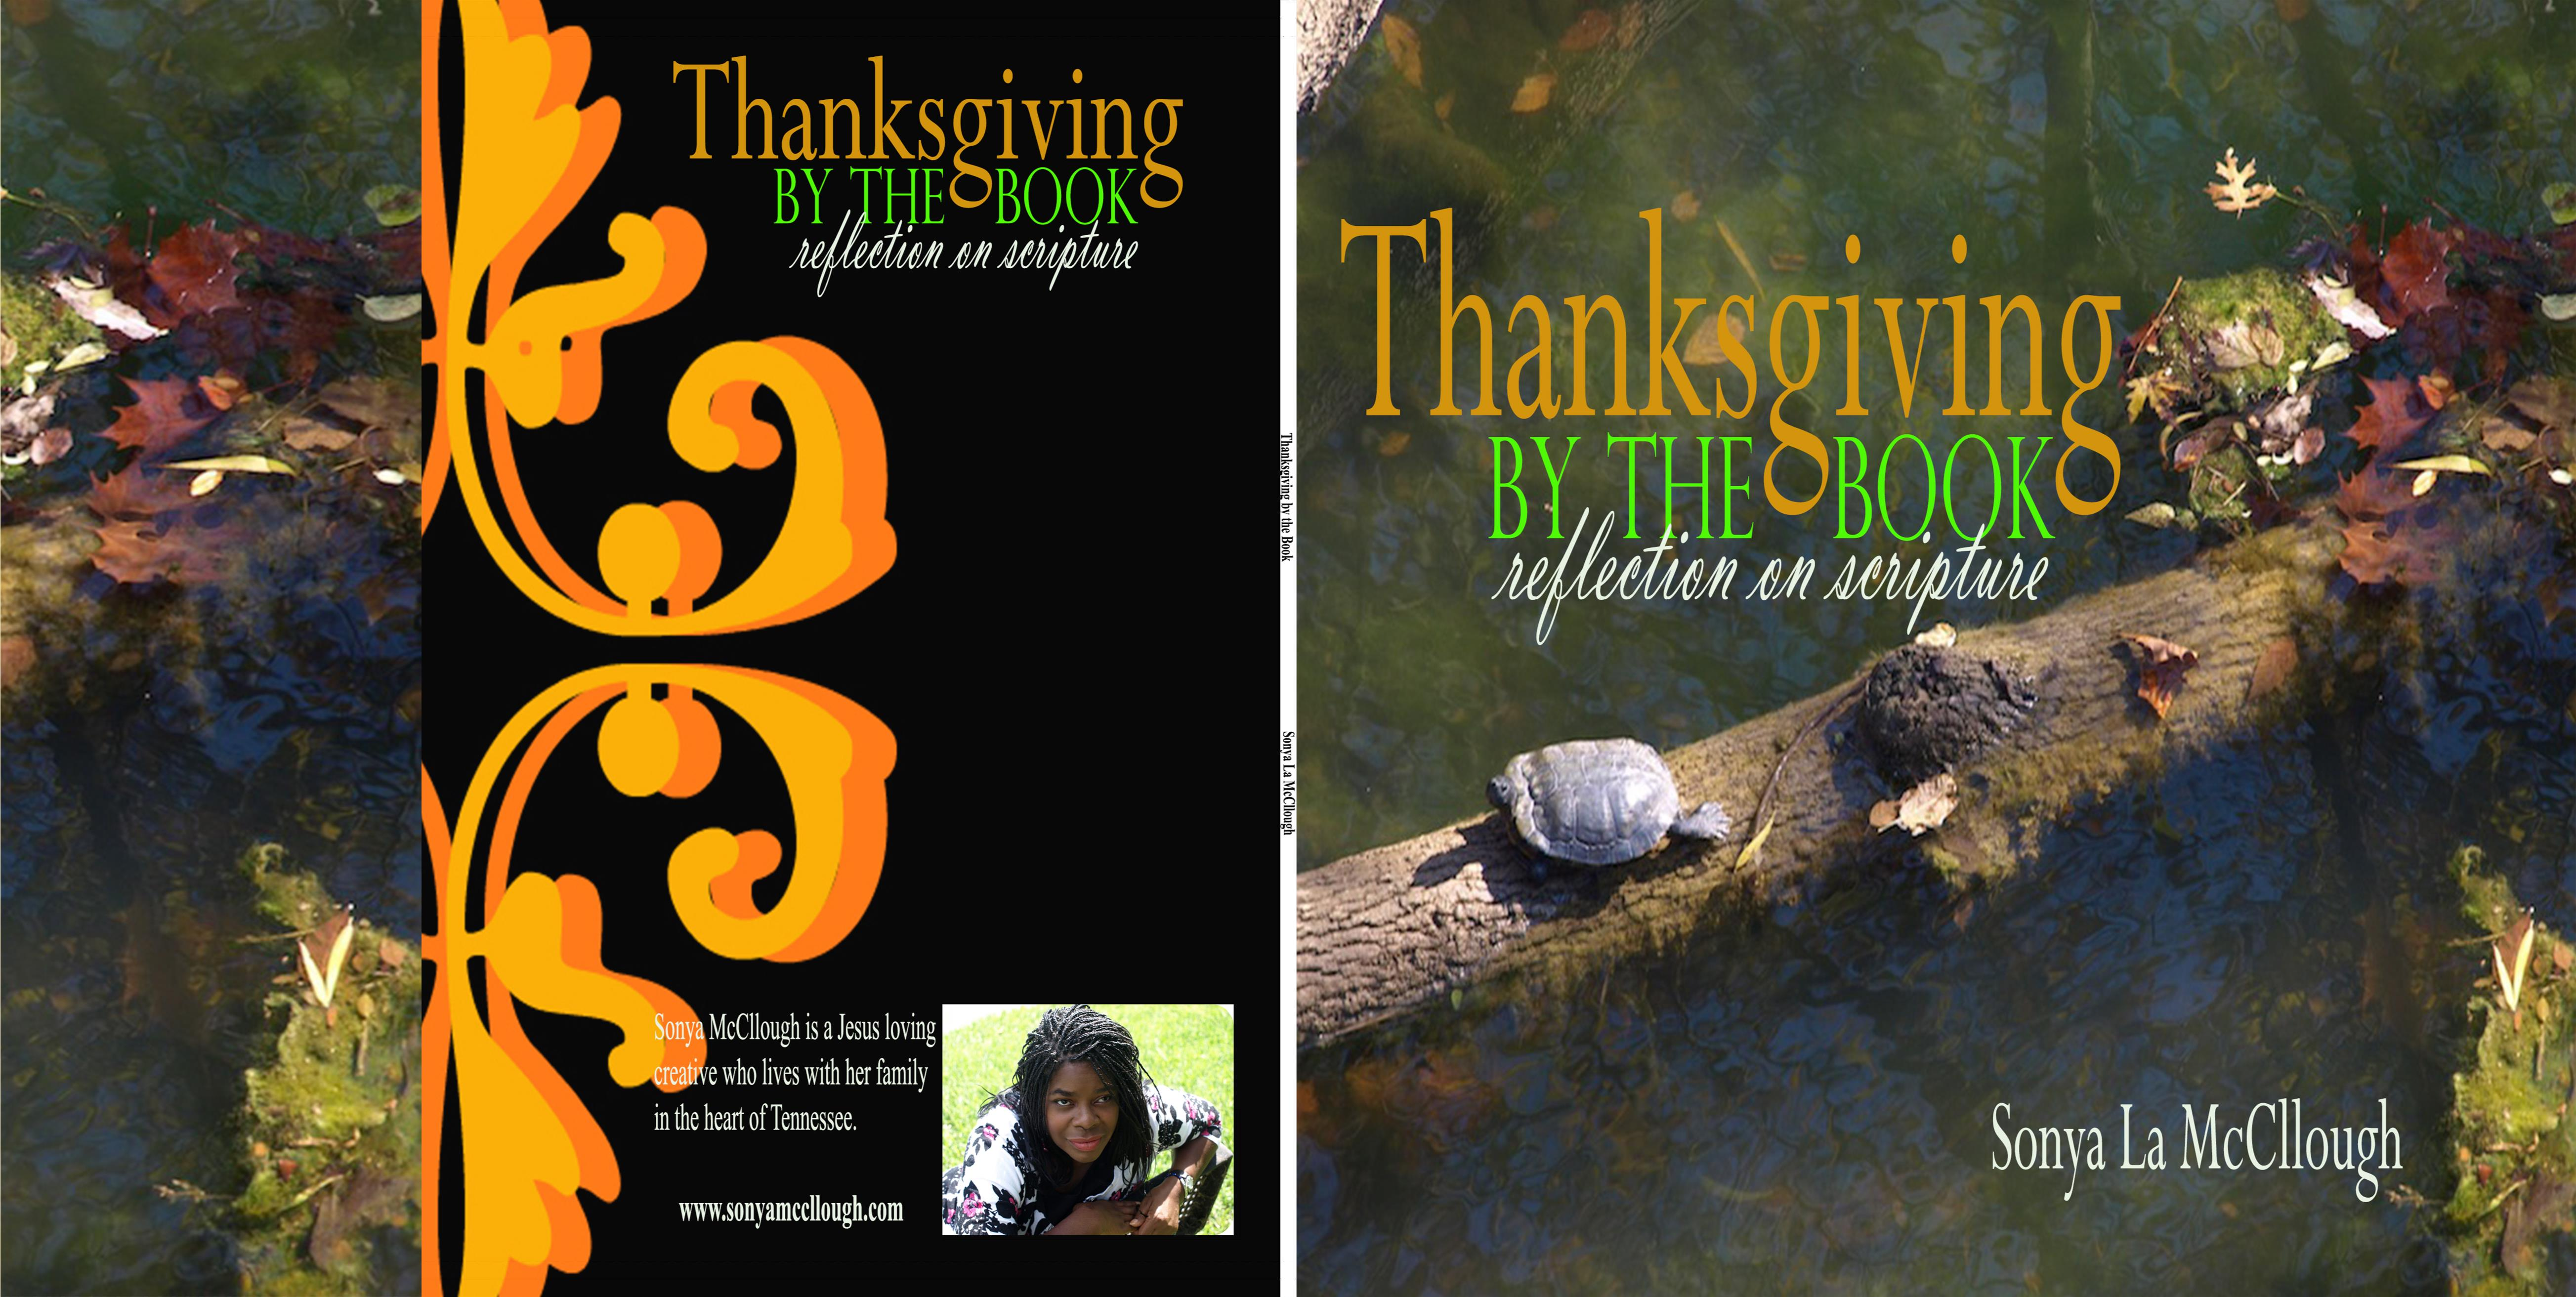 Thanksgiving by the book cover image